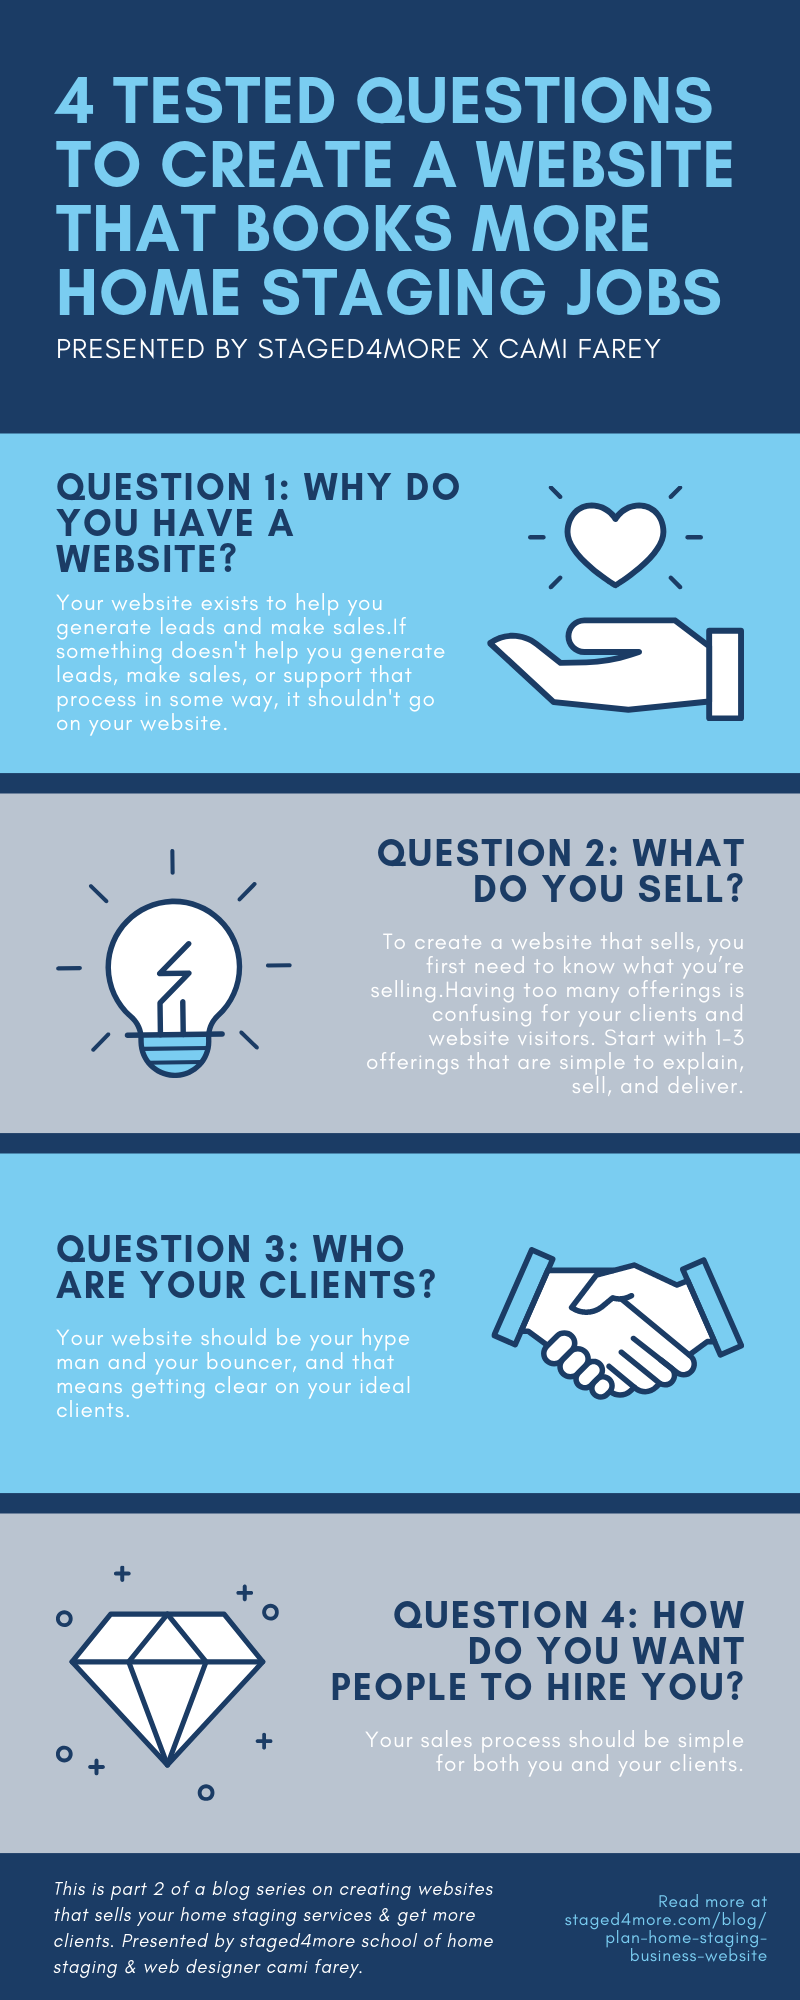 4 Tested Questions to Create a Website that Books More Home Staging Jobs. Infographic by Staged4more School of Home Staging. Want more home staging business tips? Check out our blog at www.staged4more.com/blog